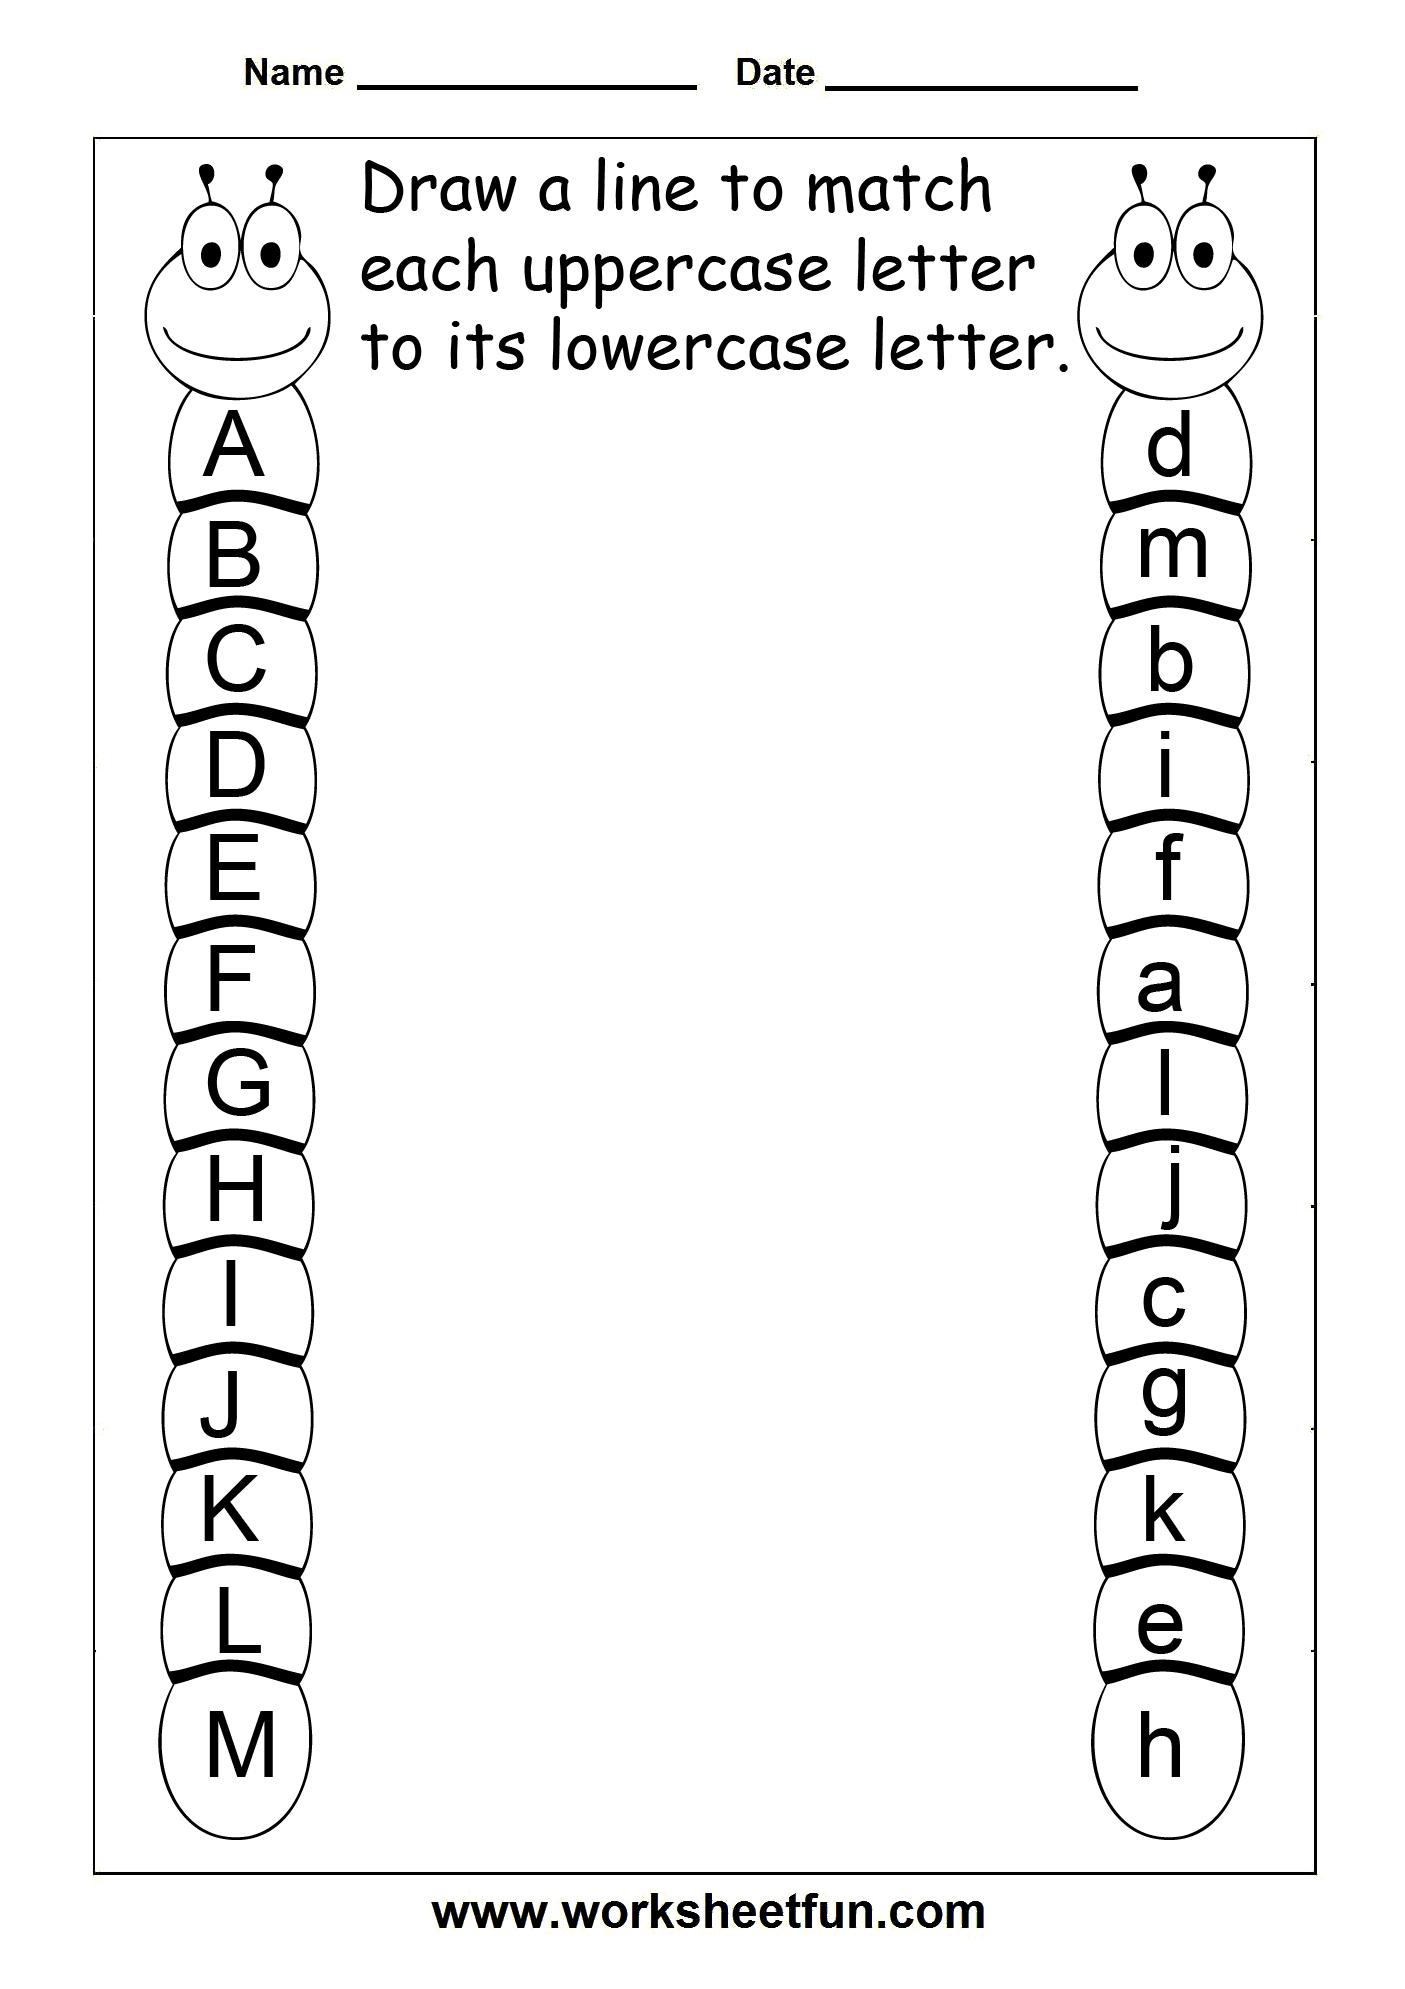 Weirdmailus  Winsome  Images About Work Worksheet On Pinterest  Hidden Pictures  With Remarkable  Images About Work Worksheet On Pinterest  Hidden Pictures Color By Numbers And Puzzles With Charming Writing Practice Worksheets For First Grade Also English Worksheets For College Students In Addition Free Printable Times Tables Worksheets  And Gcse Balancing Equations Worksheet As Well As Ack Family Worksheets Additionally Square Root Worksheets Grade  From Pinterestcom With Weirdmailus  Remarkable  Images About Work Worksheet On Pinterest  Hidden Pictures  With Charming  Images About Work Worksheet On Pinterest  Hidden Pictures Color By Numbers And Puzzles And Winsome Writing Practice Worksheets For First Grade Also English Worksheets For College Students In Addition Free Printable Times Tables Worksheets  From Pinterestcom